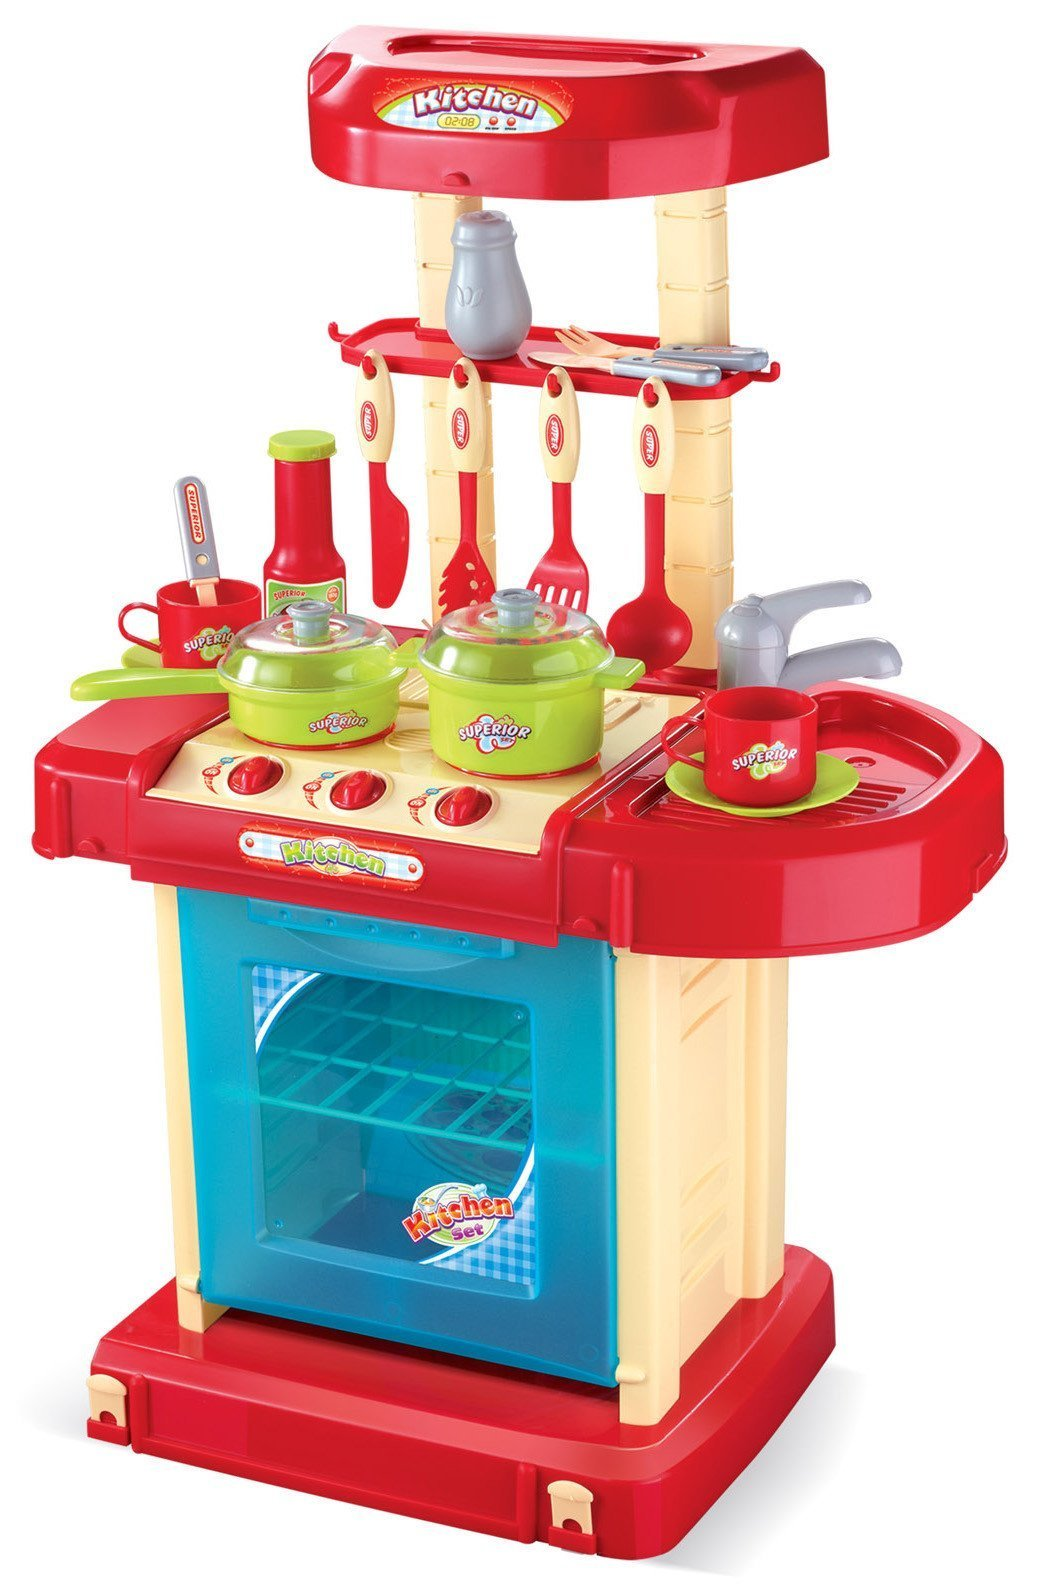 Berry Toys BR008-56A Play & Carry Plastic Play Kitchen - Red - Default